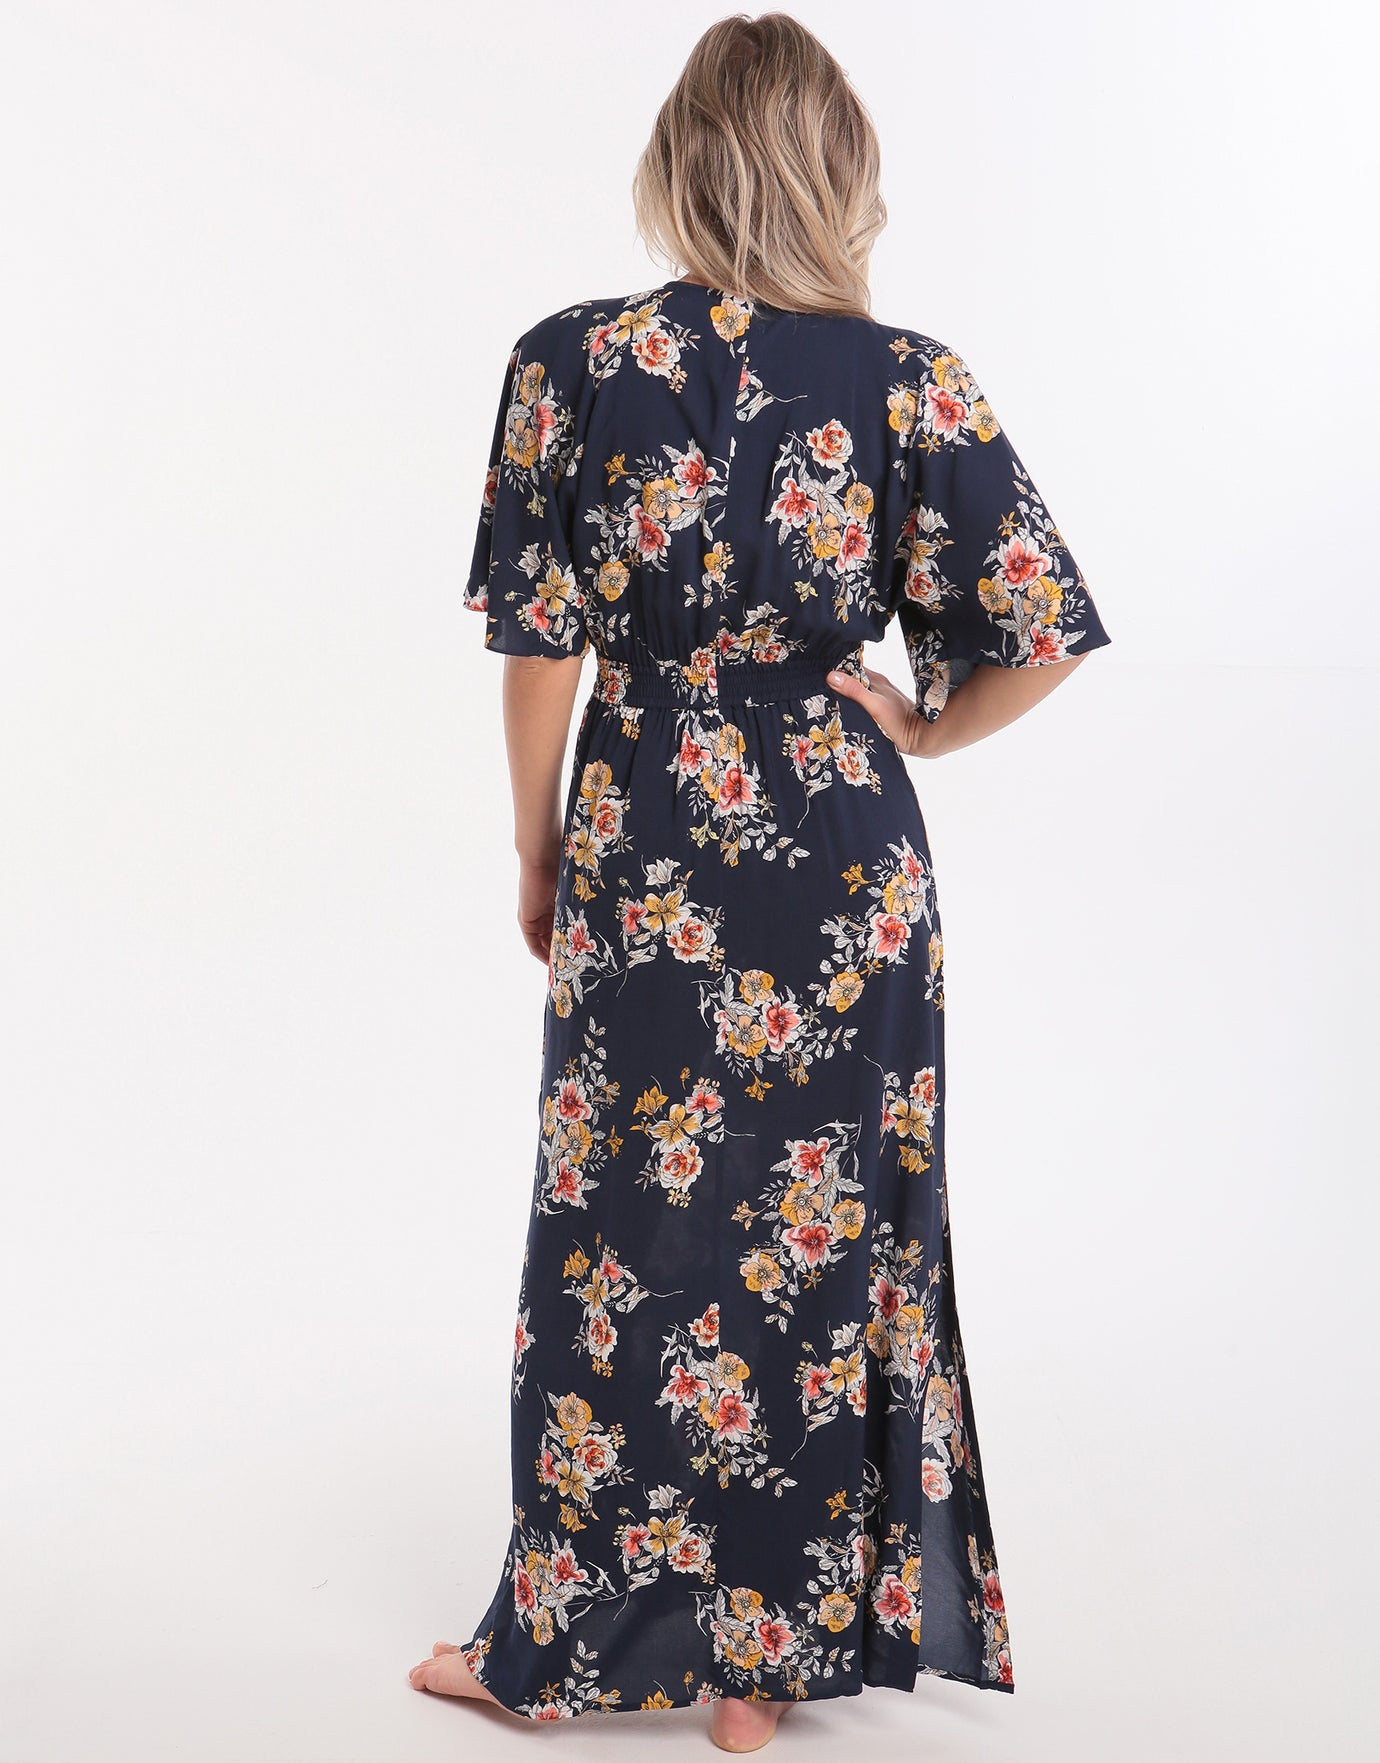 Seafolly Mid Summer Florals Maxi Beach Dress - Indigo